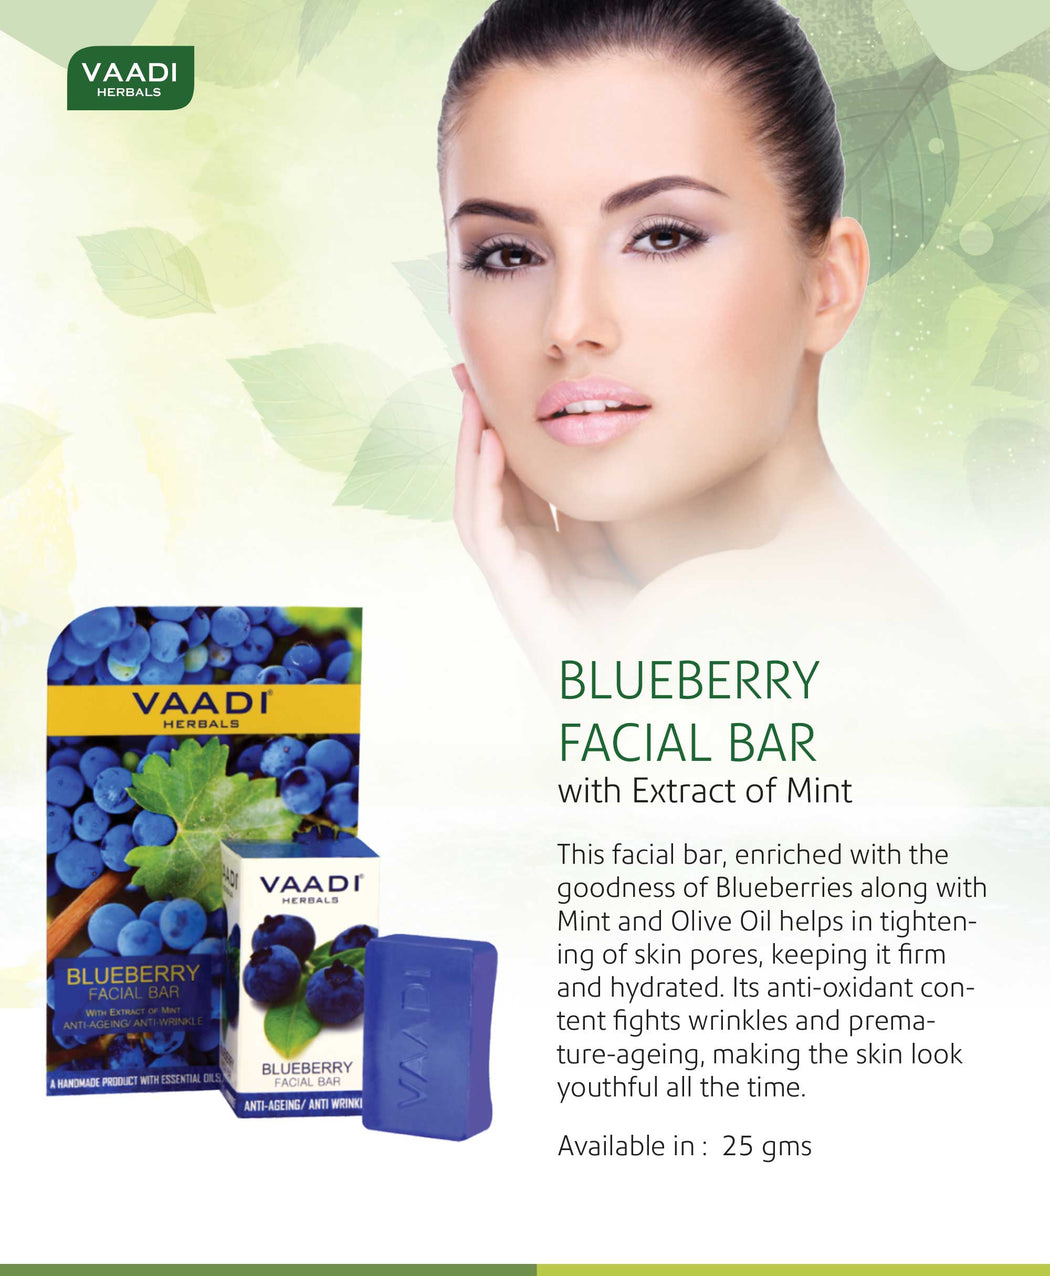 Organic Blueberry Facial Bar with Mint Extract & Olive Oil - Prevents Wrinkles (25 gms/0.9 oz)